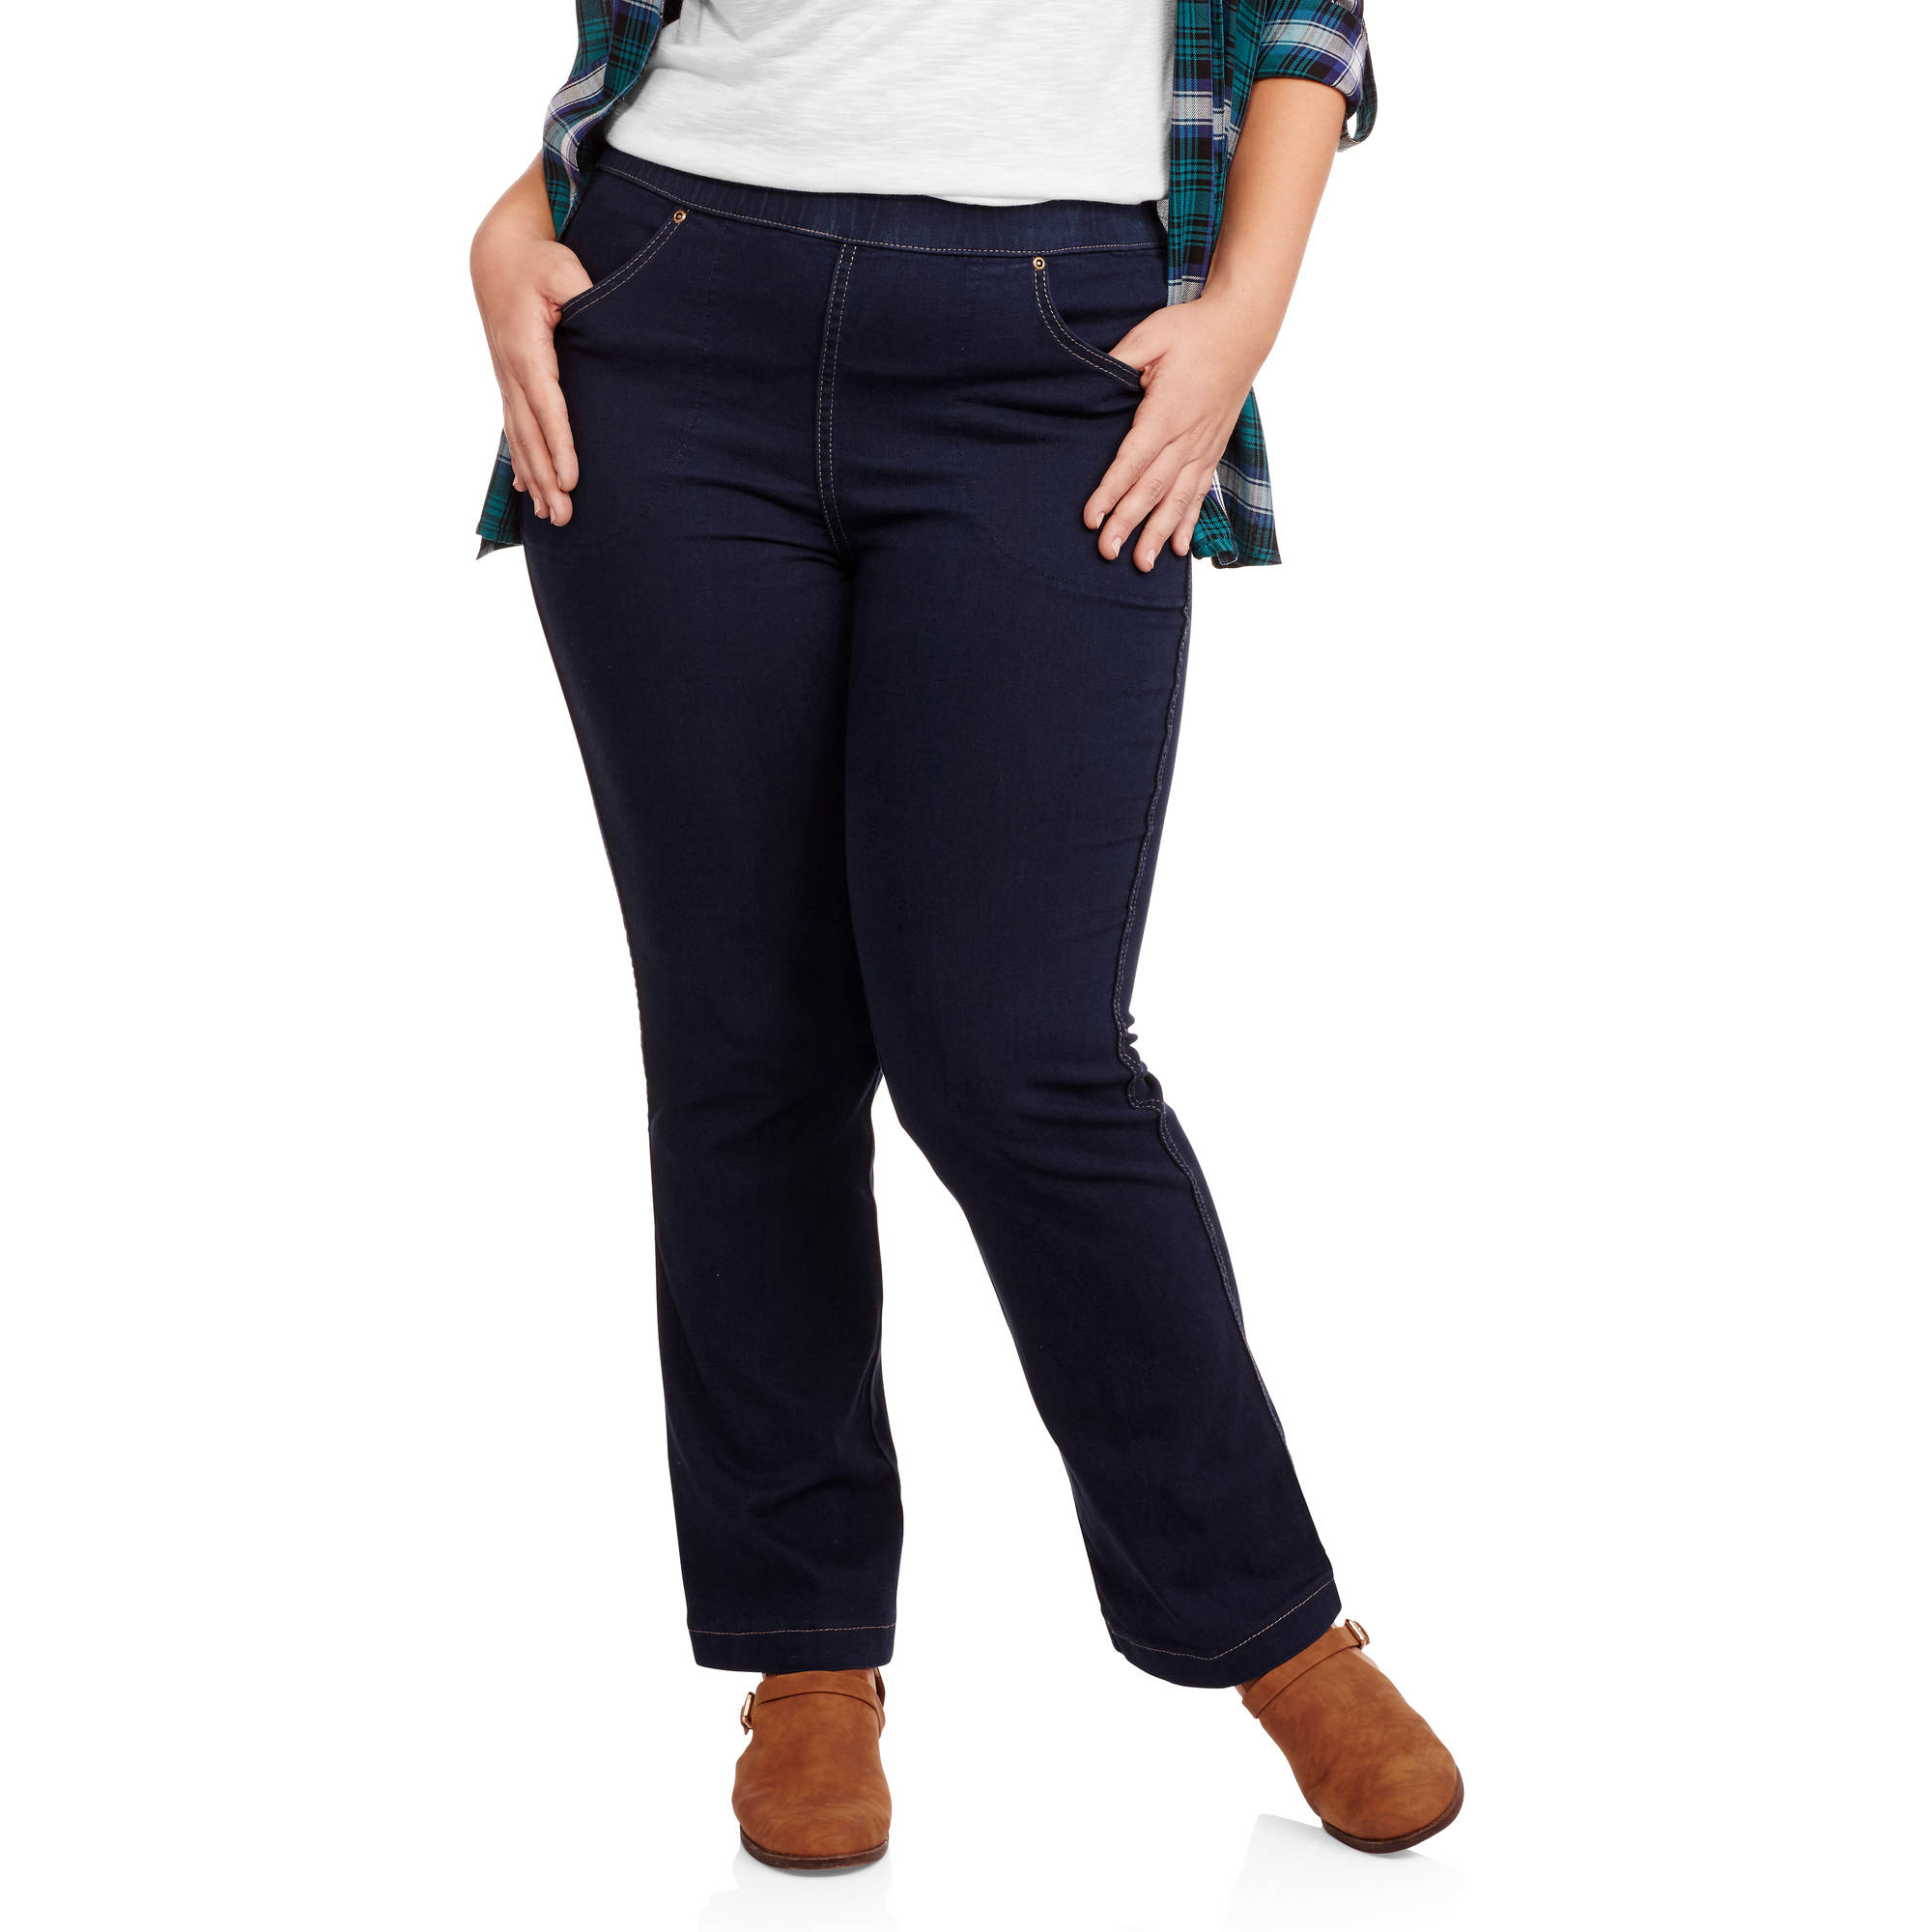 Just My Size Women's Plus-Size 4 Pocket Pull On Bootcut Stretch Jeans, Available in Regular and Petite Lengths